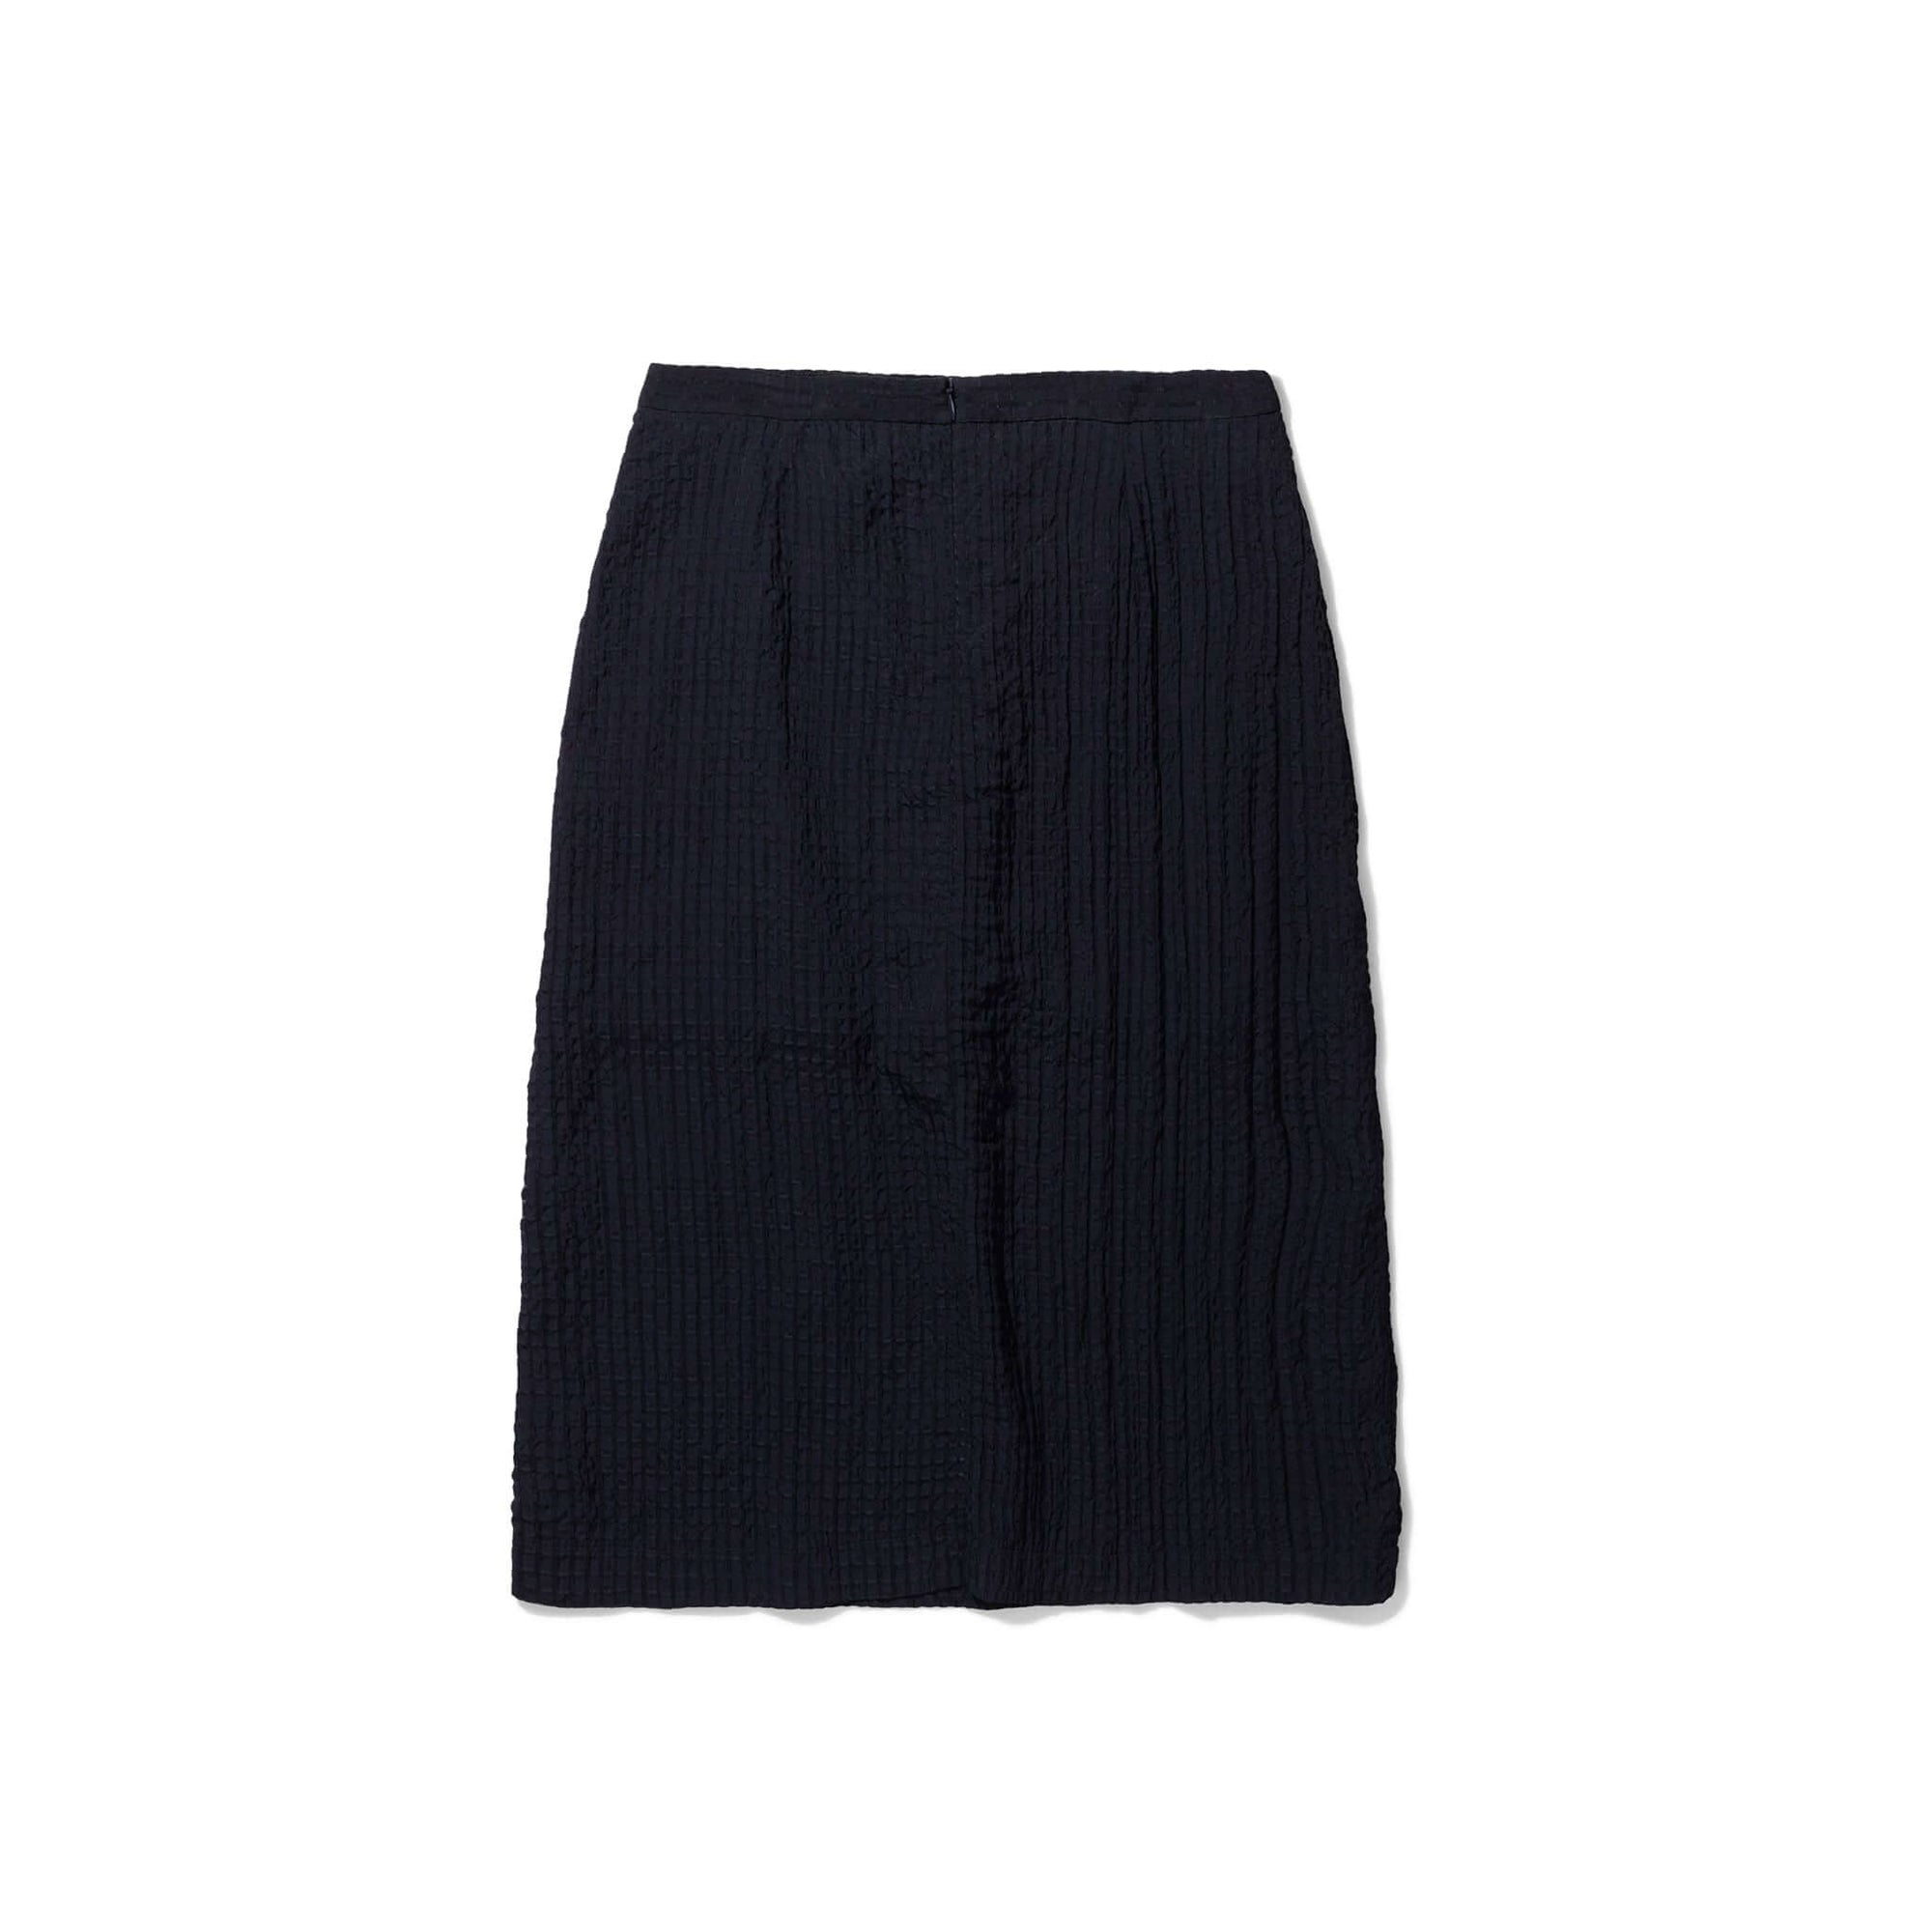 Norse Projects Womens Mirjam Light Check Skirt: Dark Navy - The Union Project